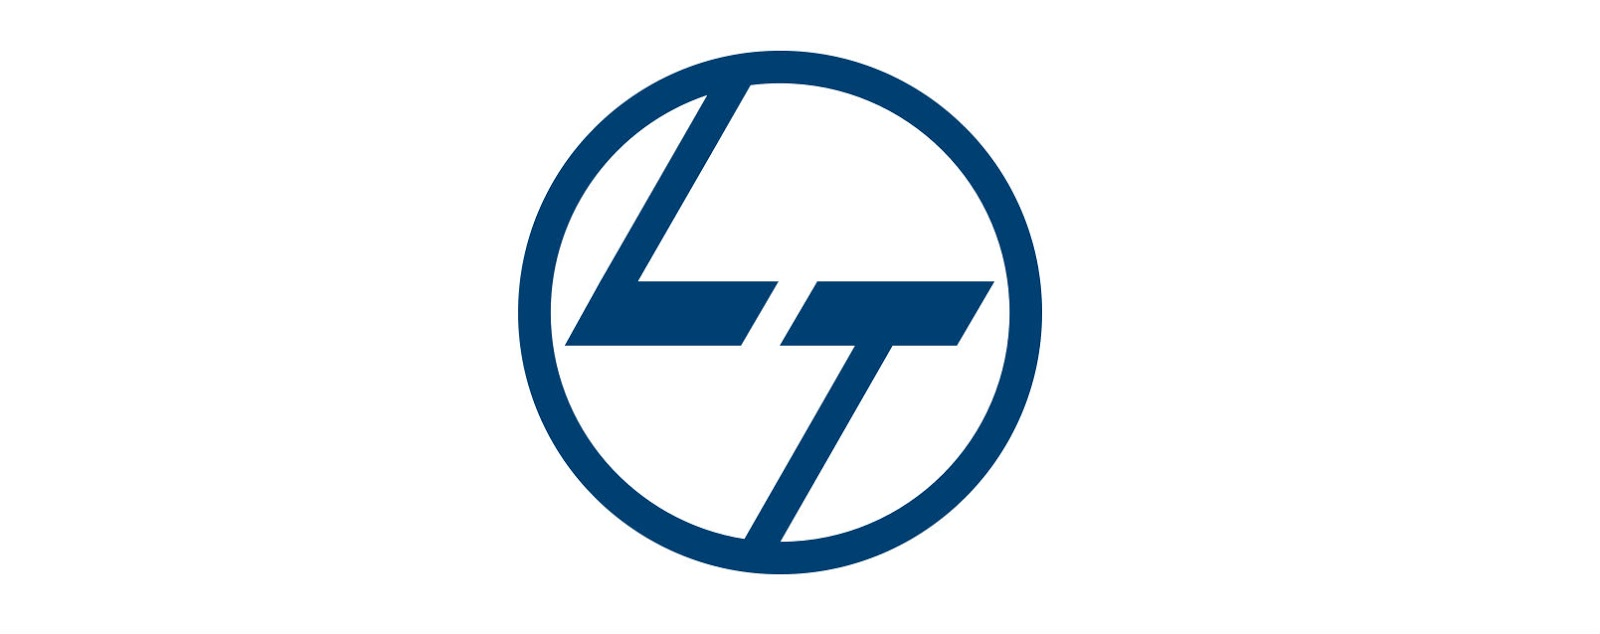 Best selling power equipment company (Power generation) - L&T